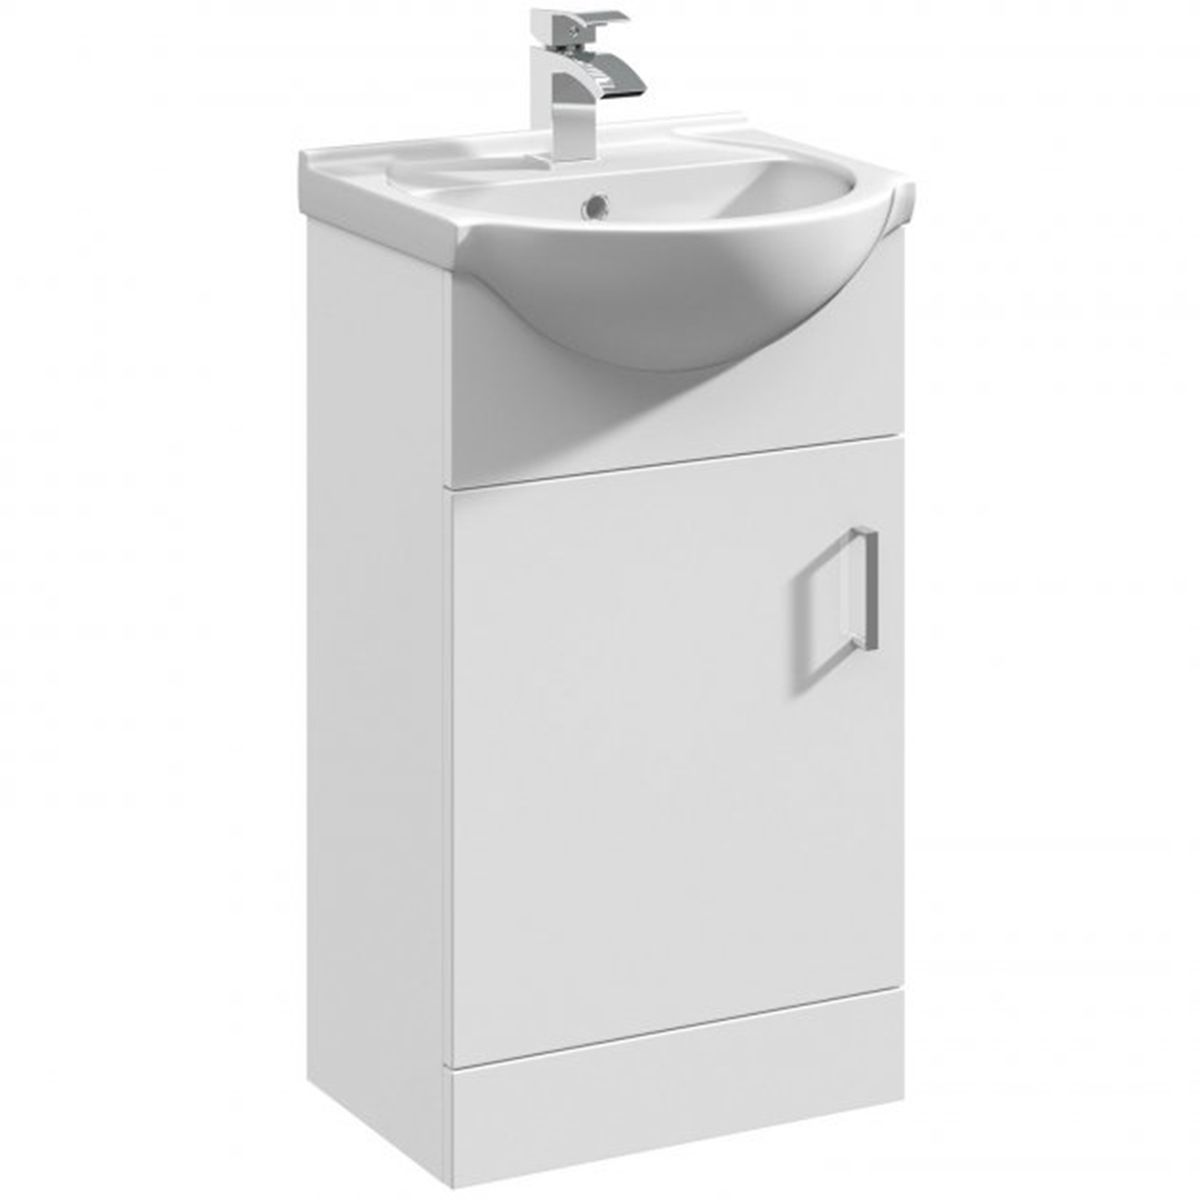 Nuie Mayford White Gloss Basin Unit 450mm